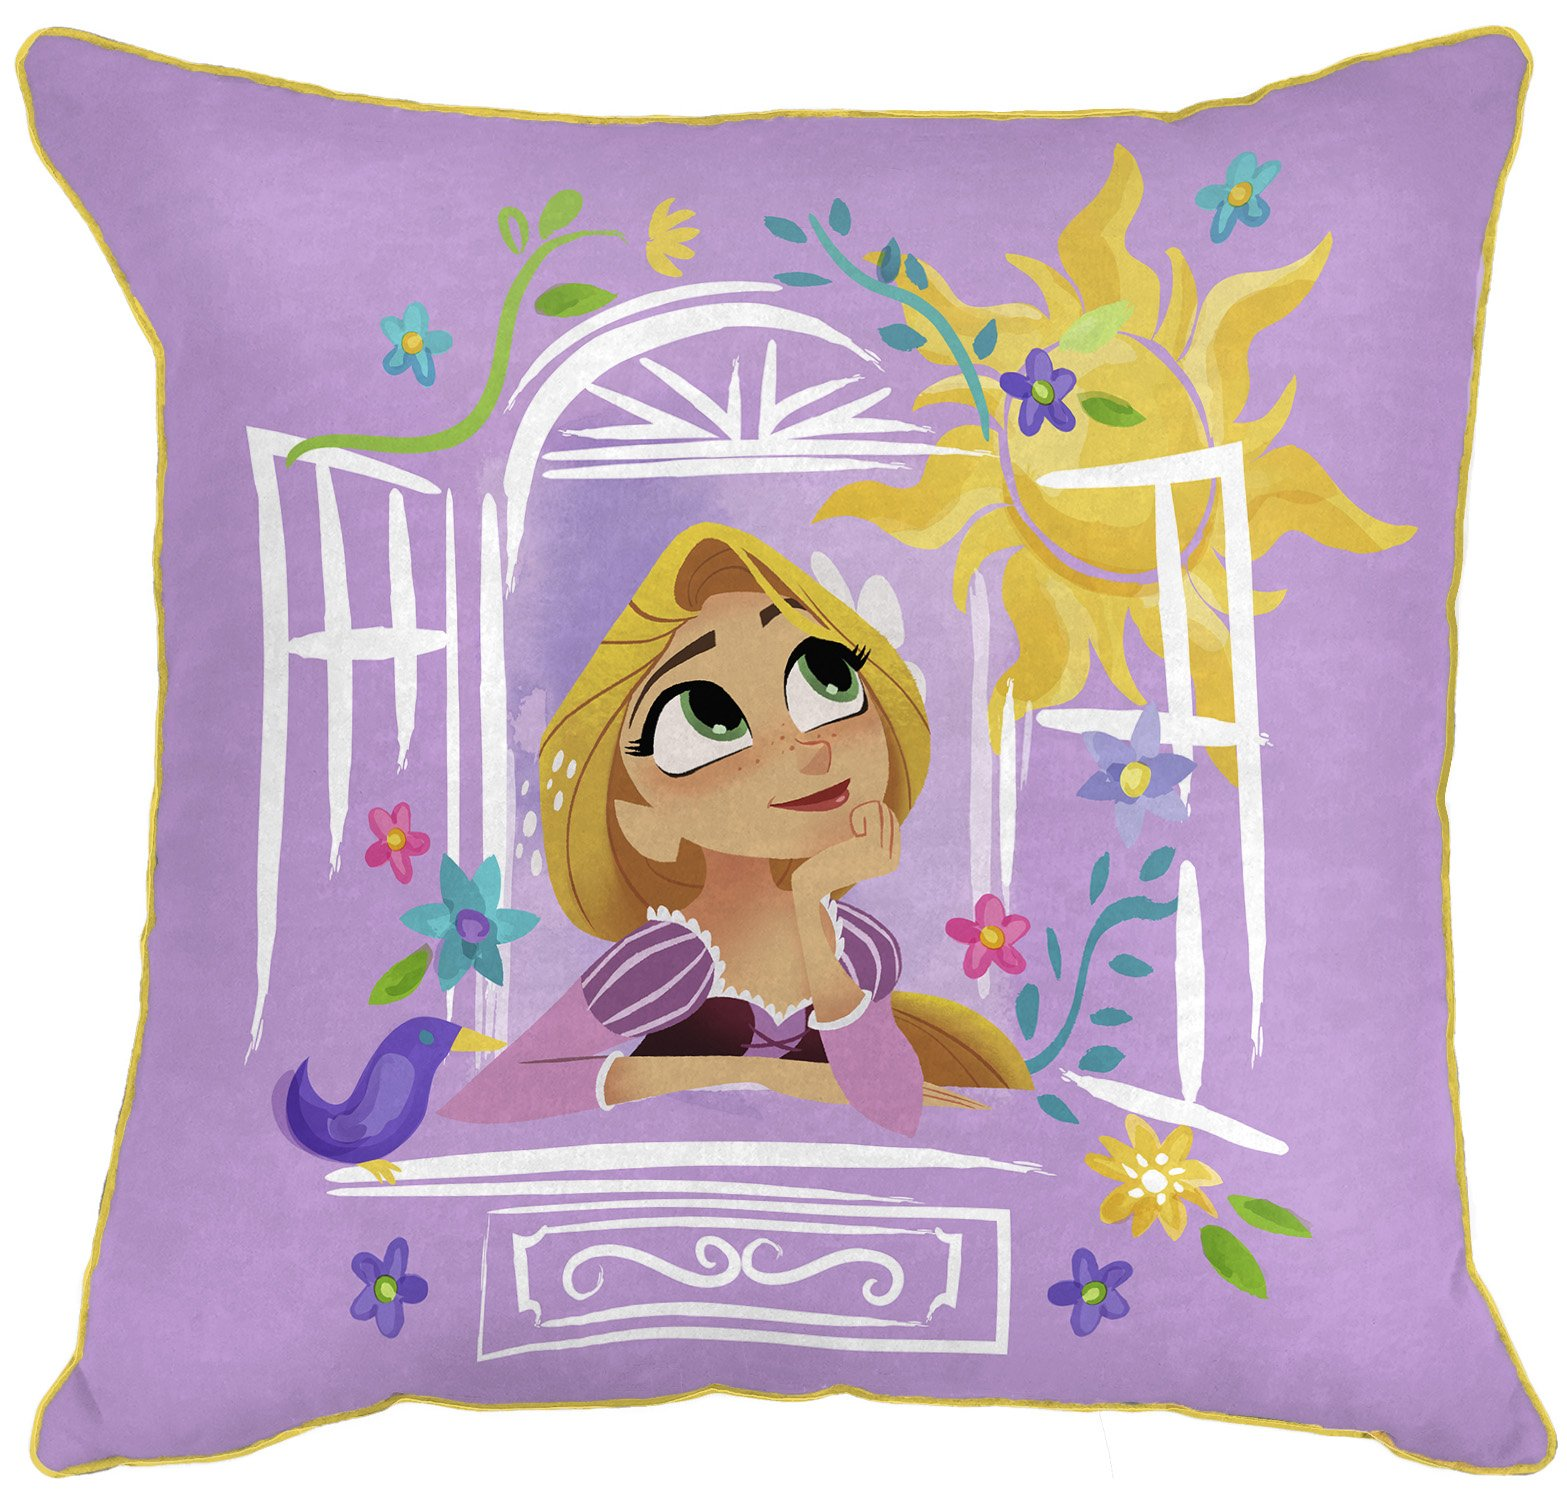 Disney Tangled There Is More 14'' x 14'' Decorative Toss Throw Pillow, Purple/Gold